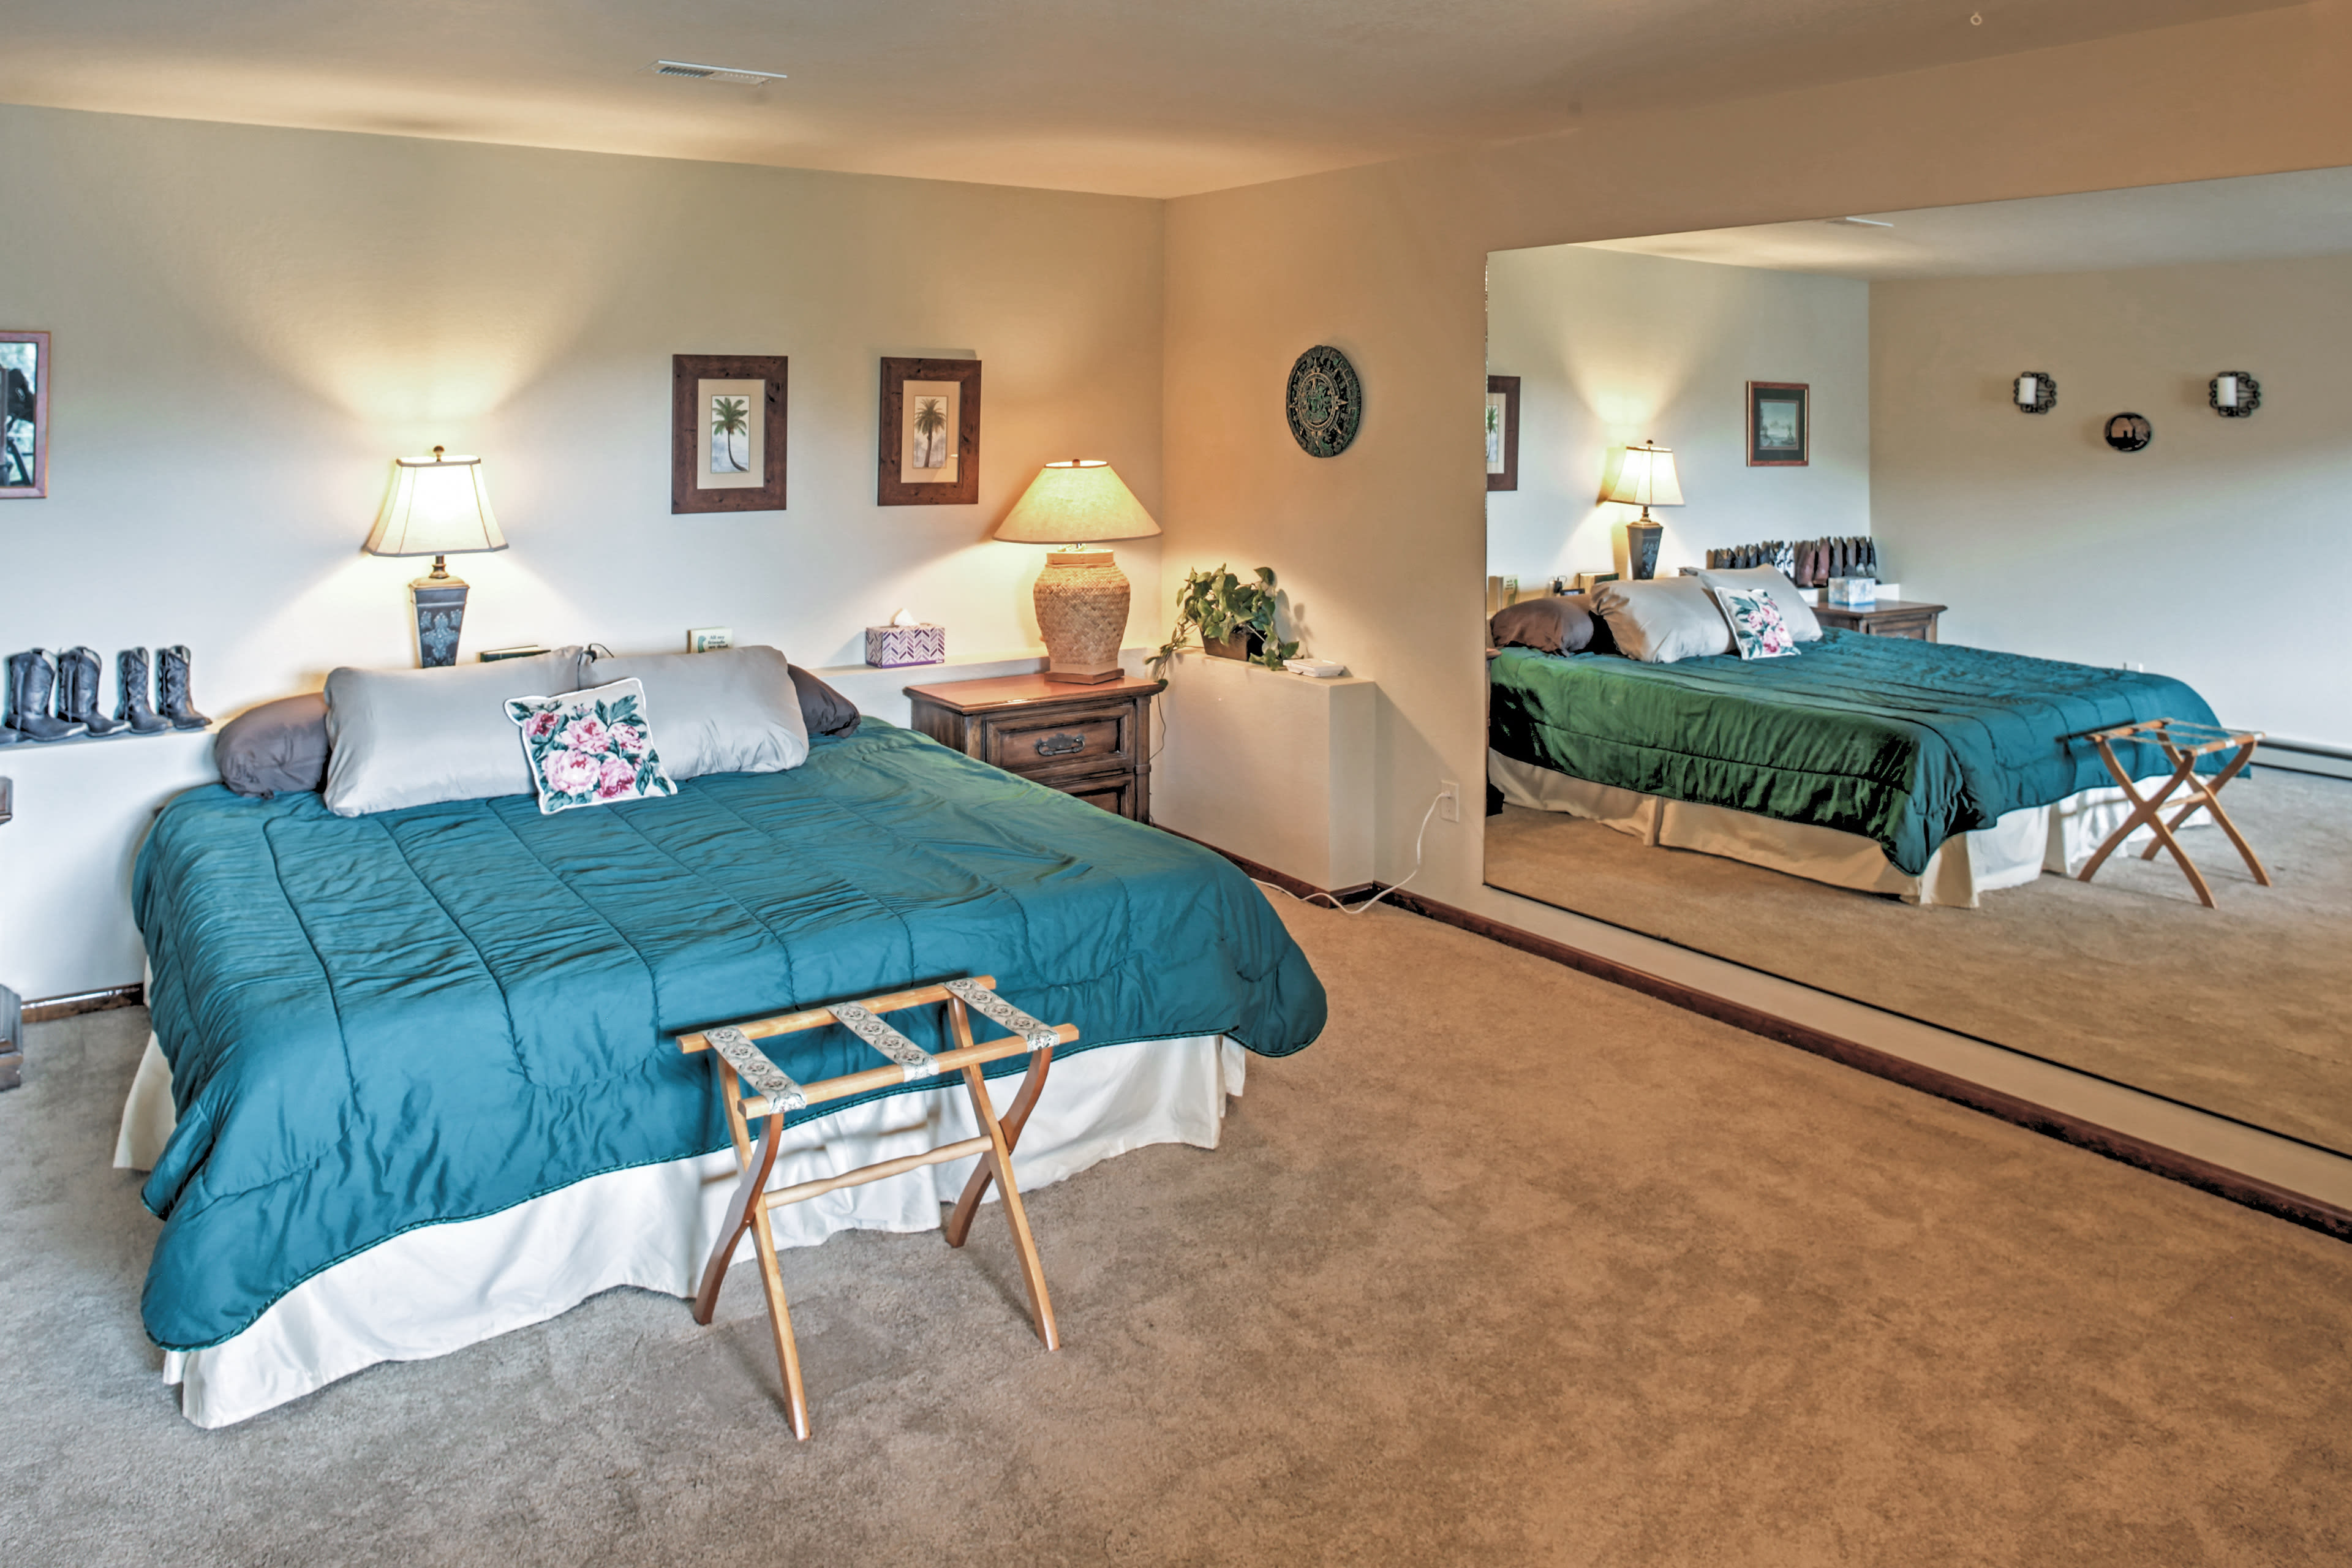 Yet another huge bedroom has a king size bed, lake views and a massive mirror.